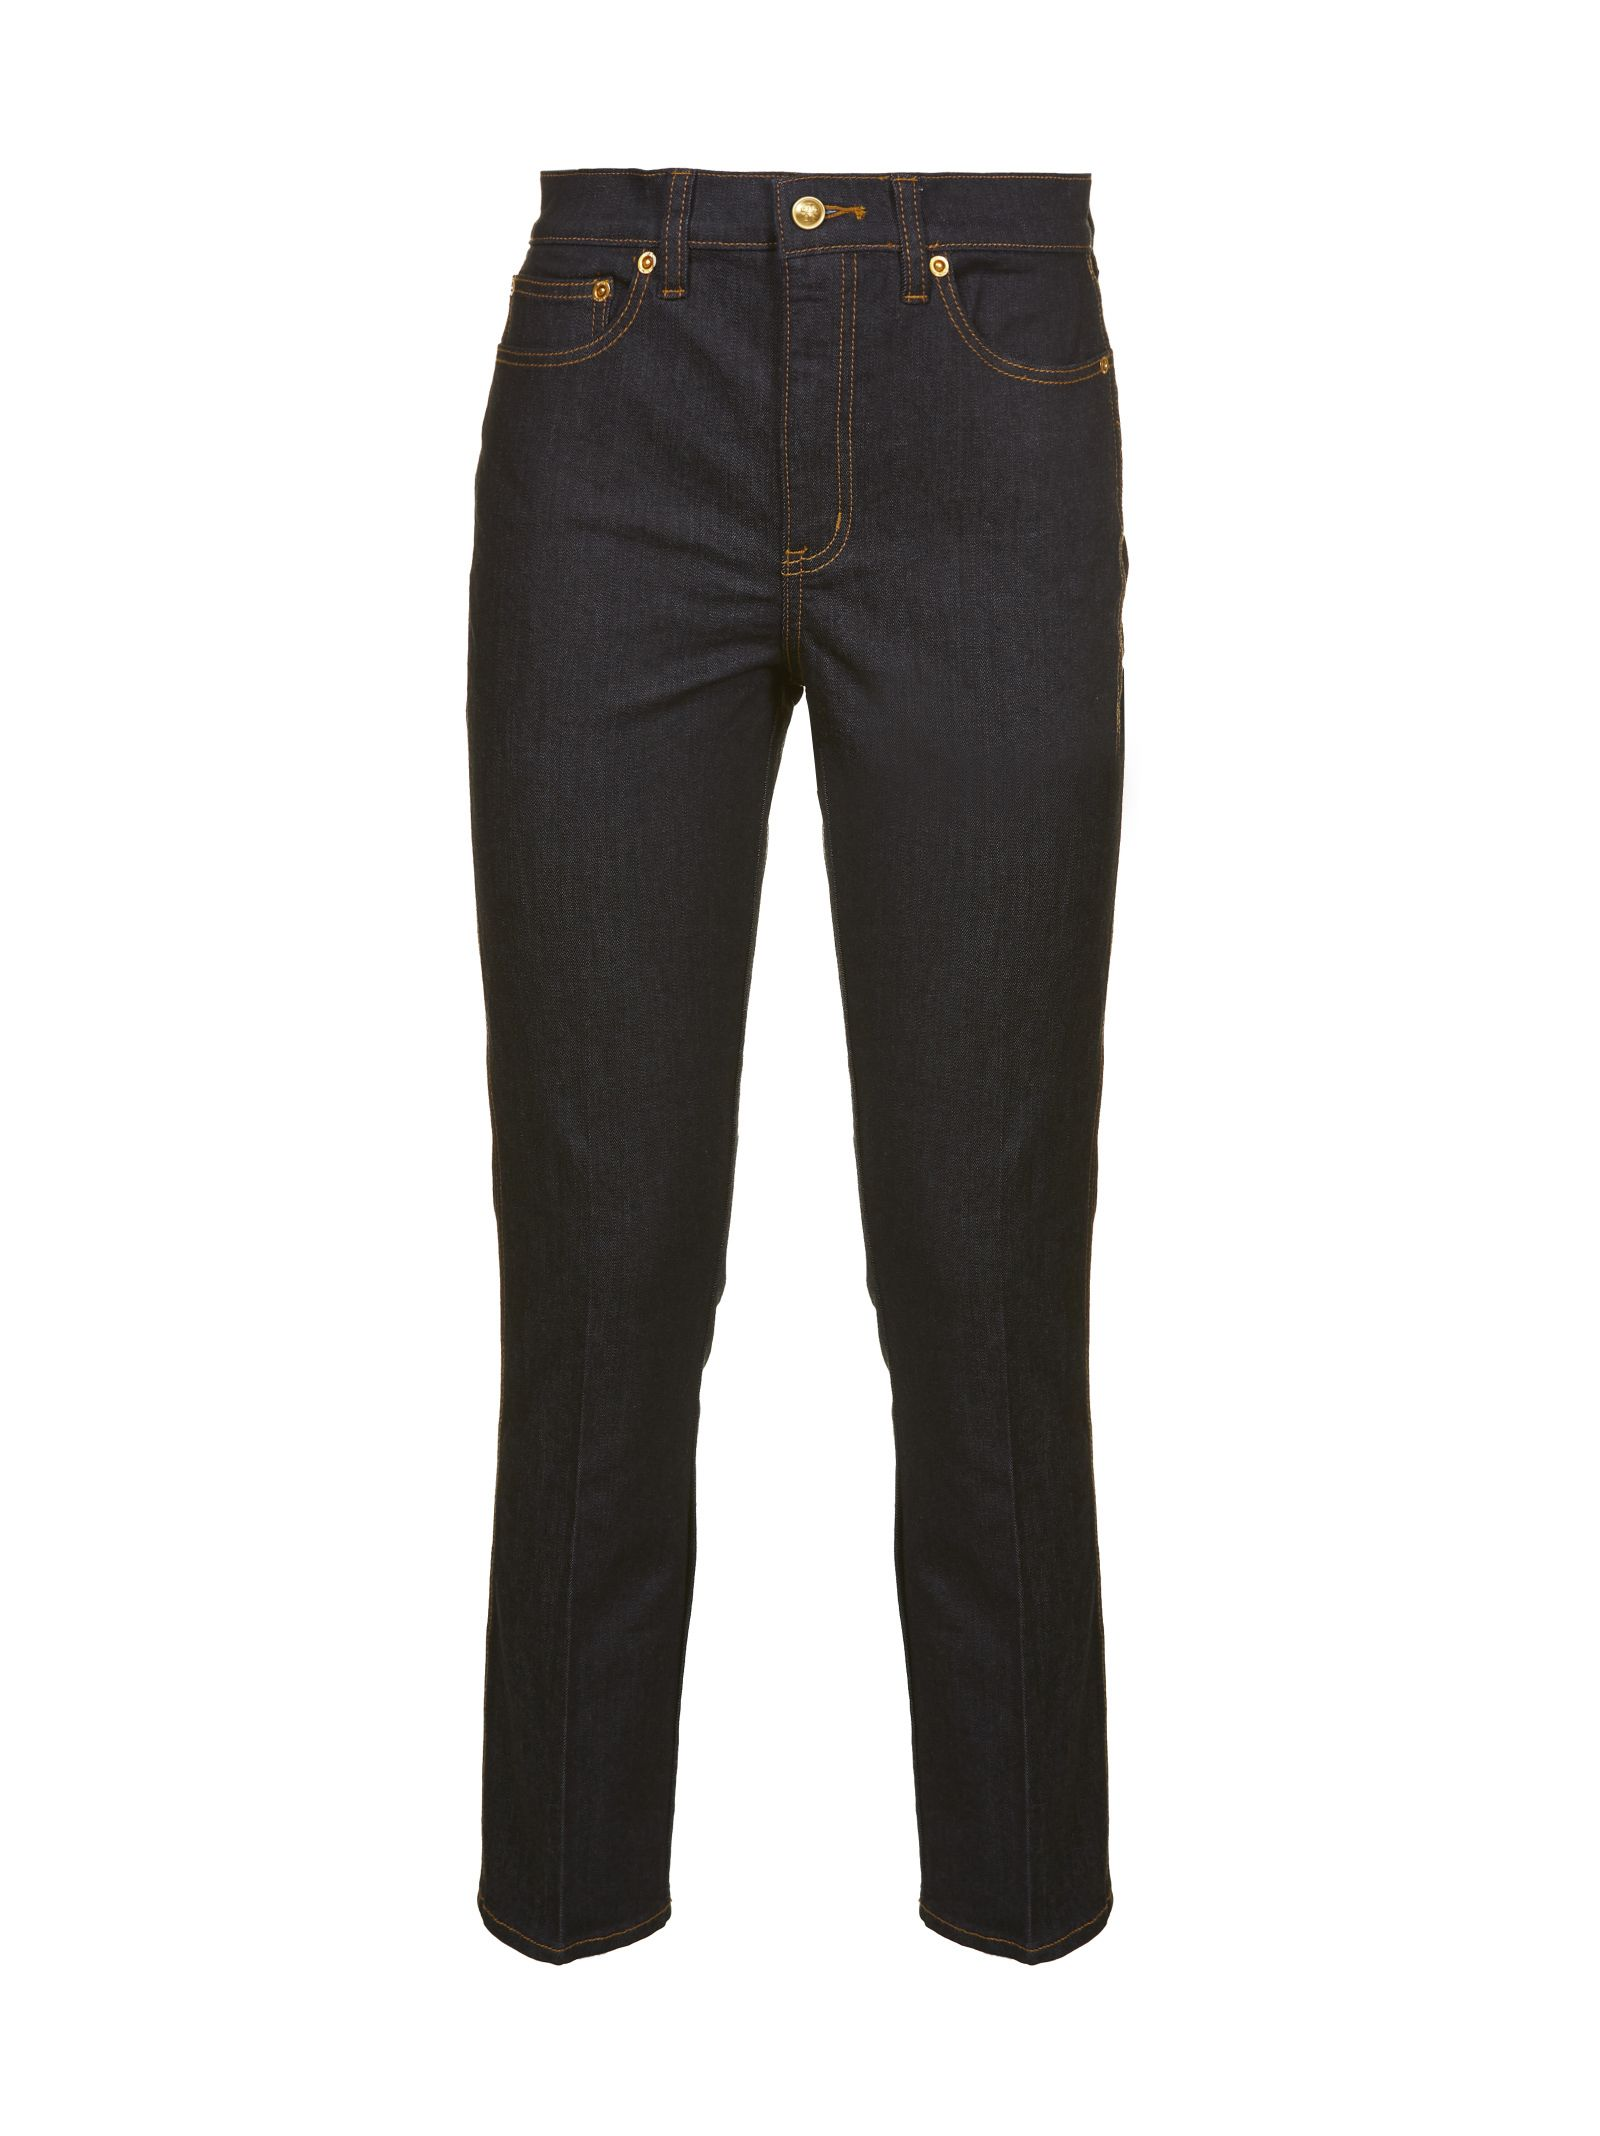 Tory Burch Skinny Fit Jeans